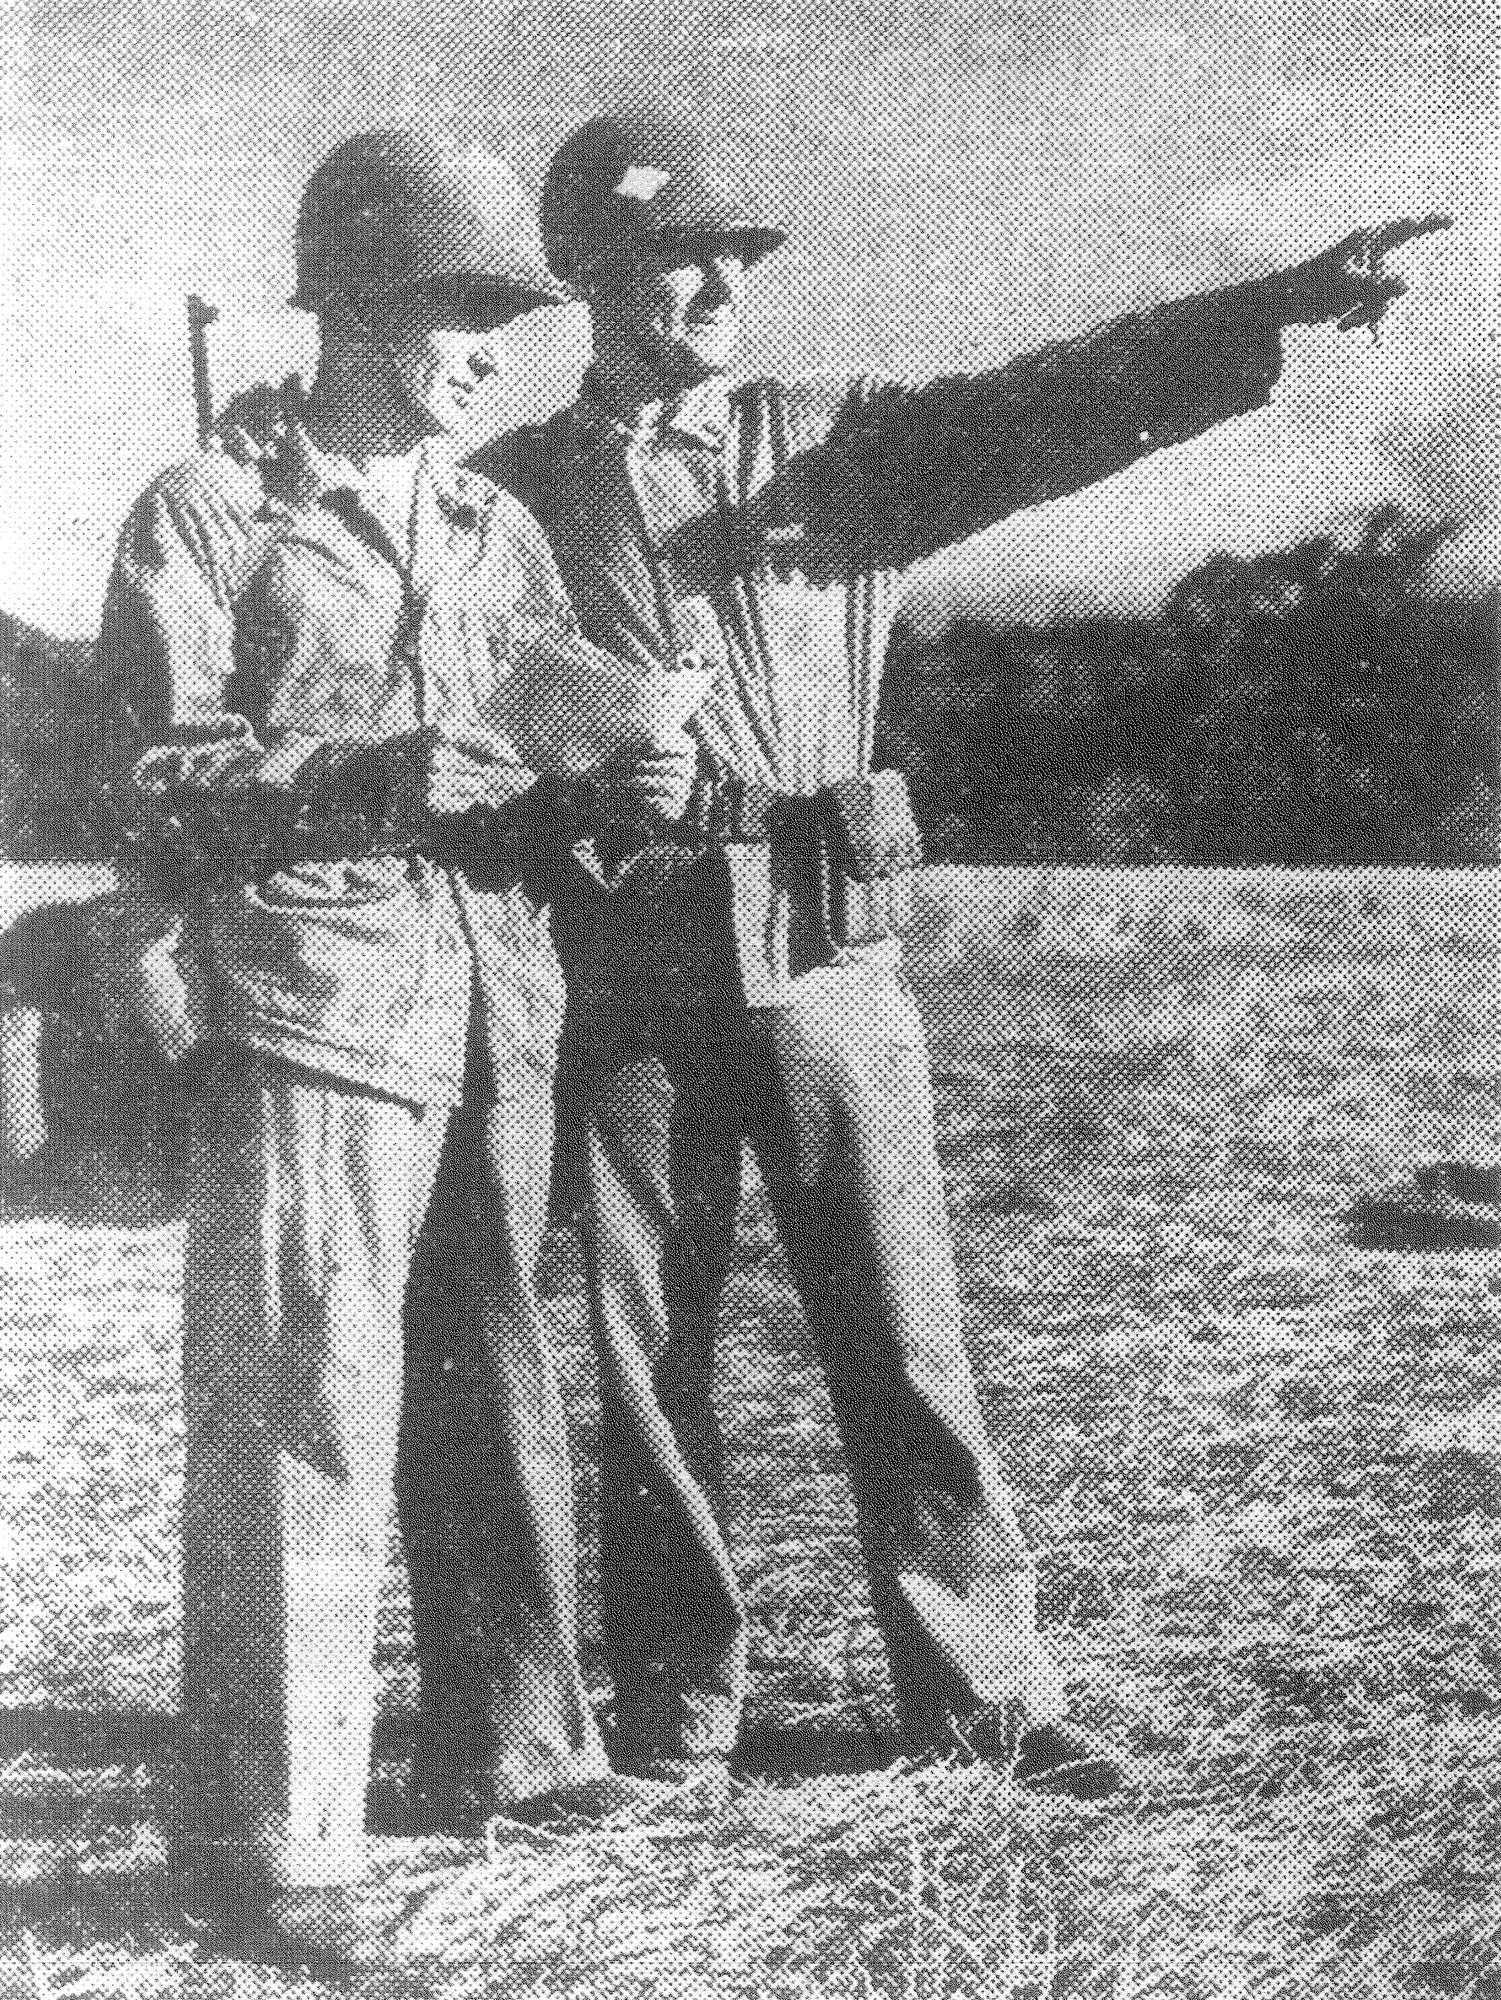 1943 - Somewhere in the South Pacific, Capt. B.O. Cantey Jr. of Sumter and Chief Marine Gunner Laurie P. Mallard of California are seen in the field. Both were officers in a Marine artillery outfit.